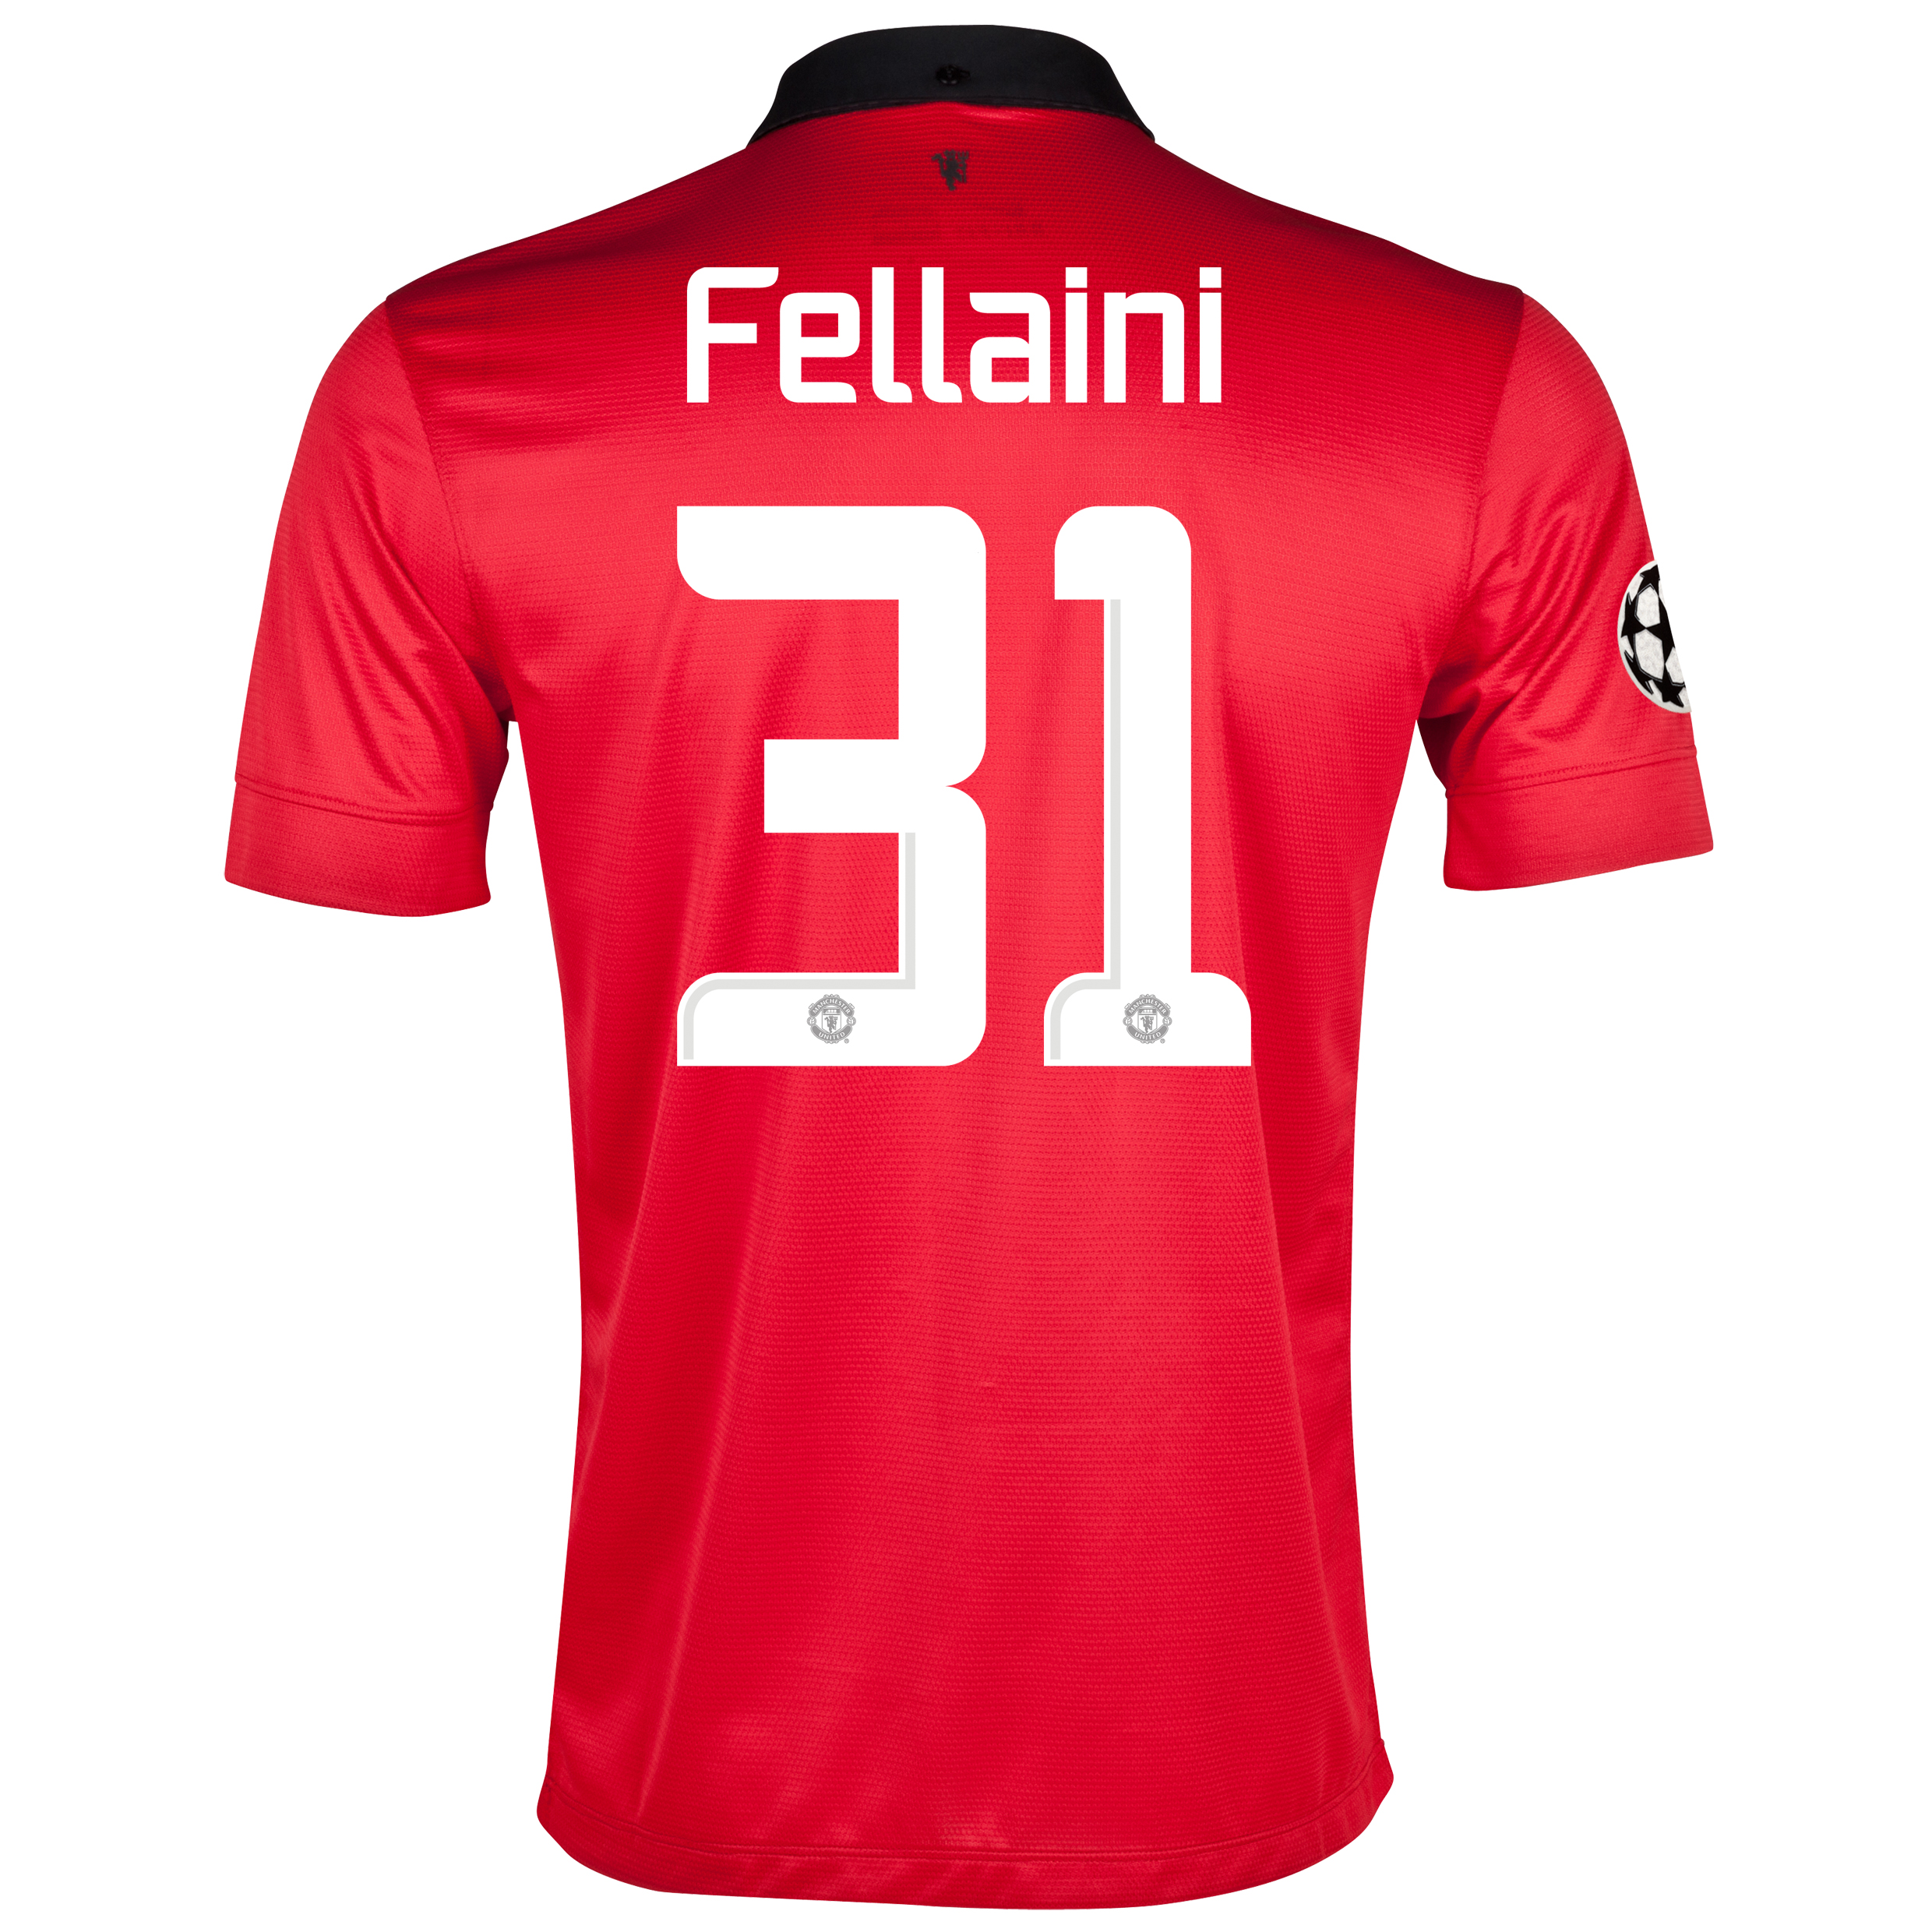 Manchester United UEFA Champions League Home Shirt 2013/14 with Fellaini 31 printing